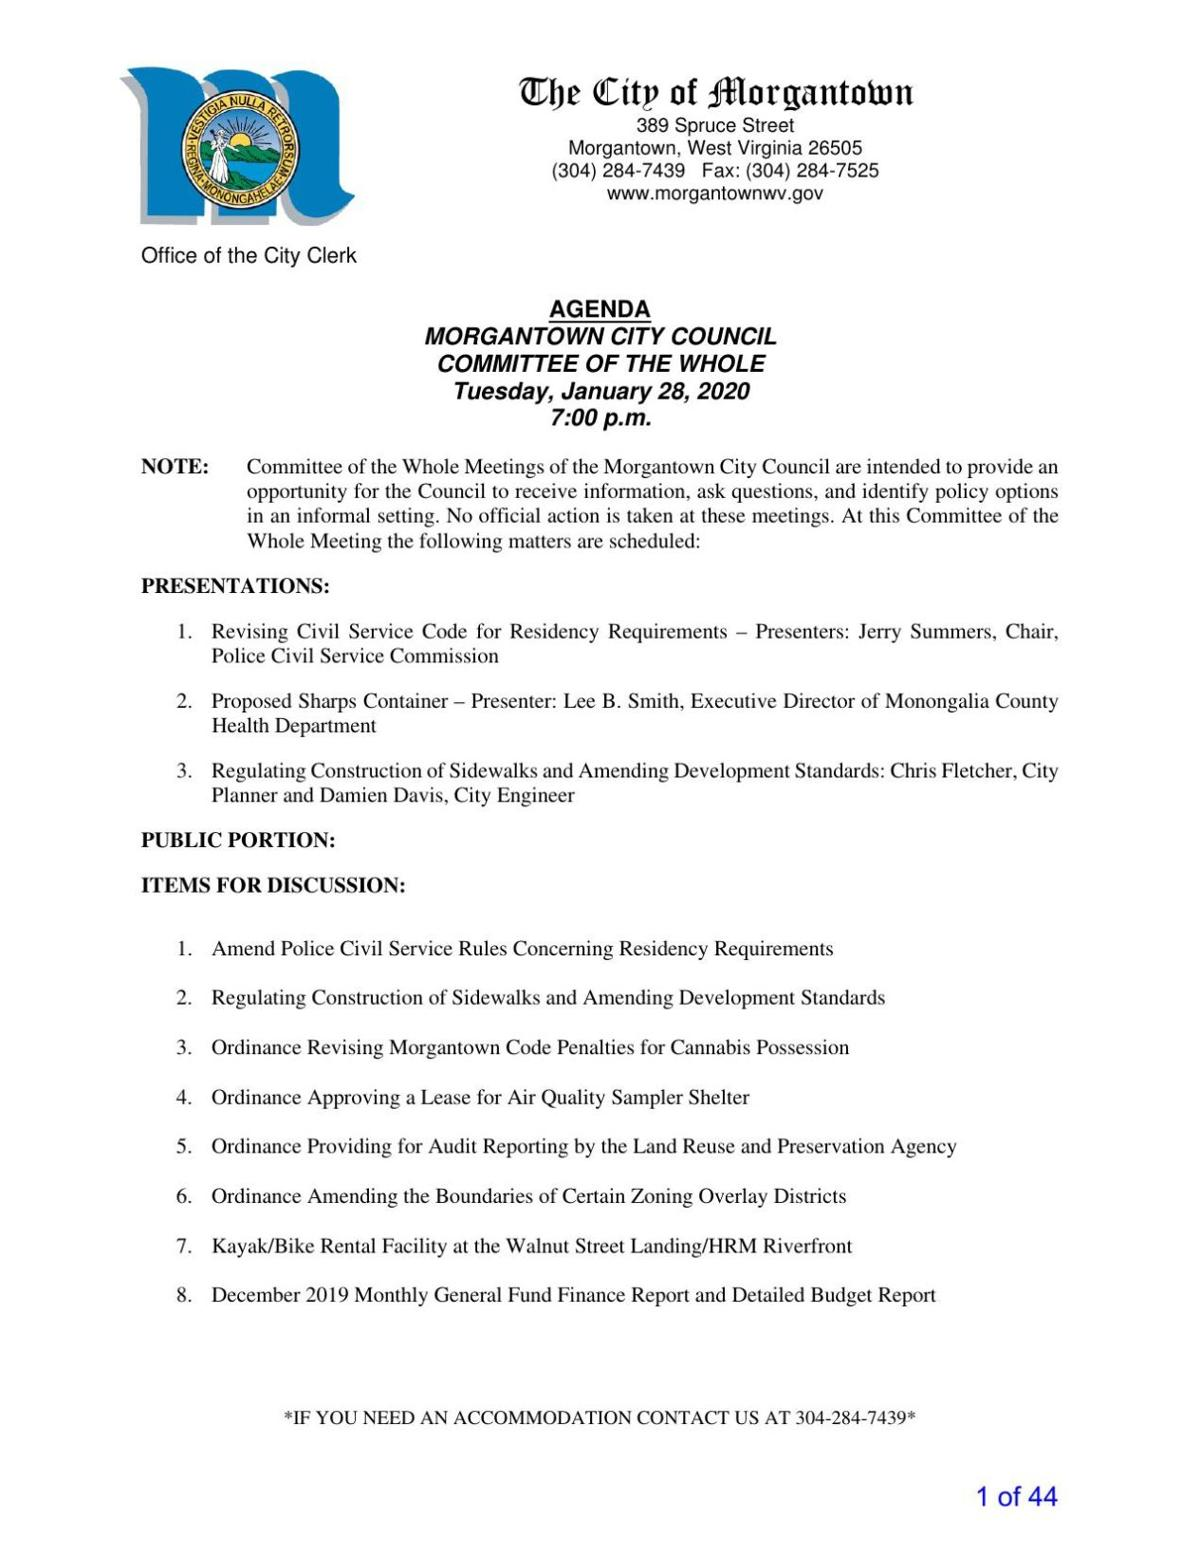 Jan. 28 Committee of the Whole meeting agenda packet